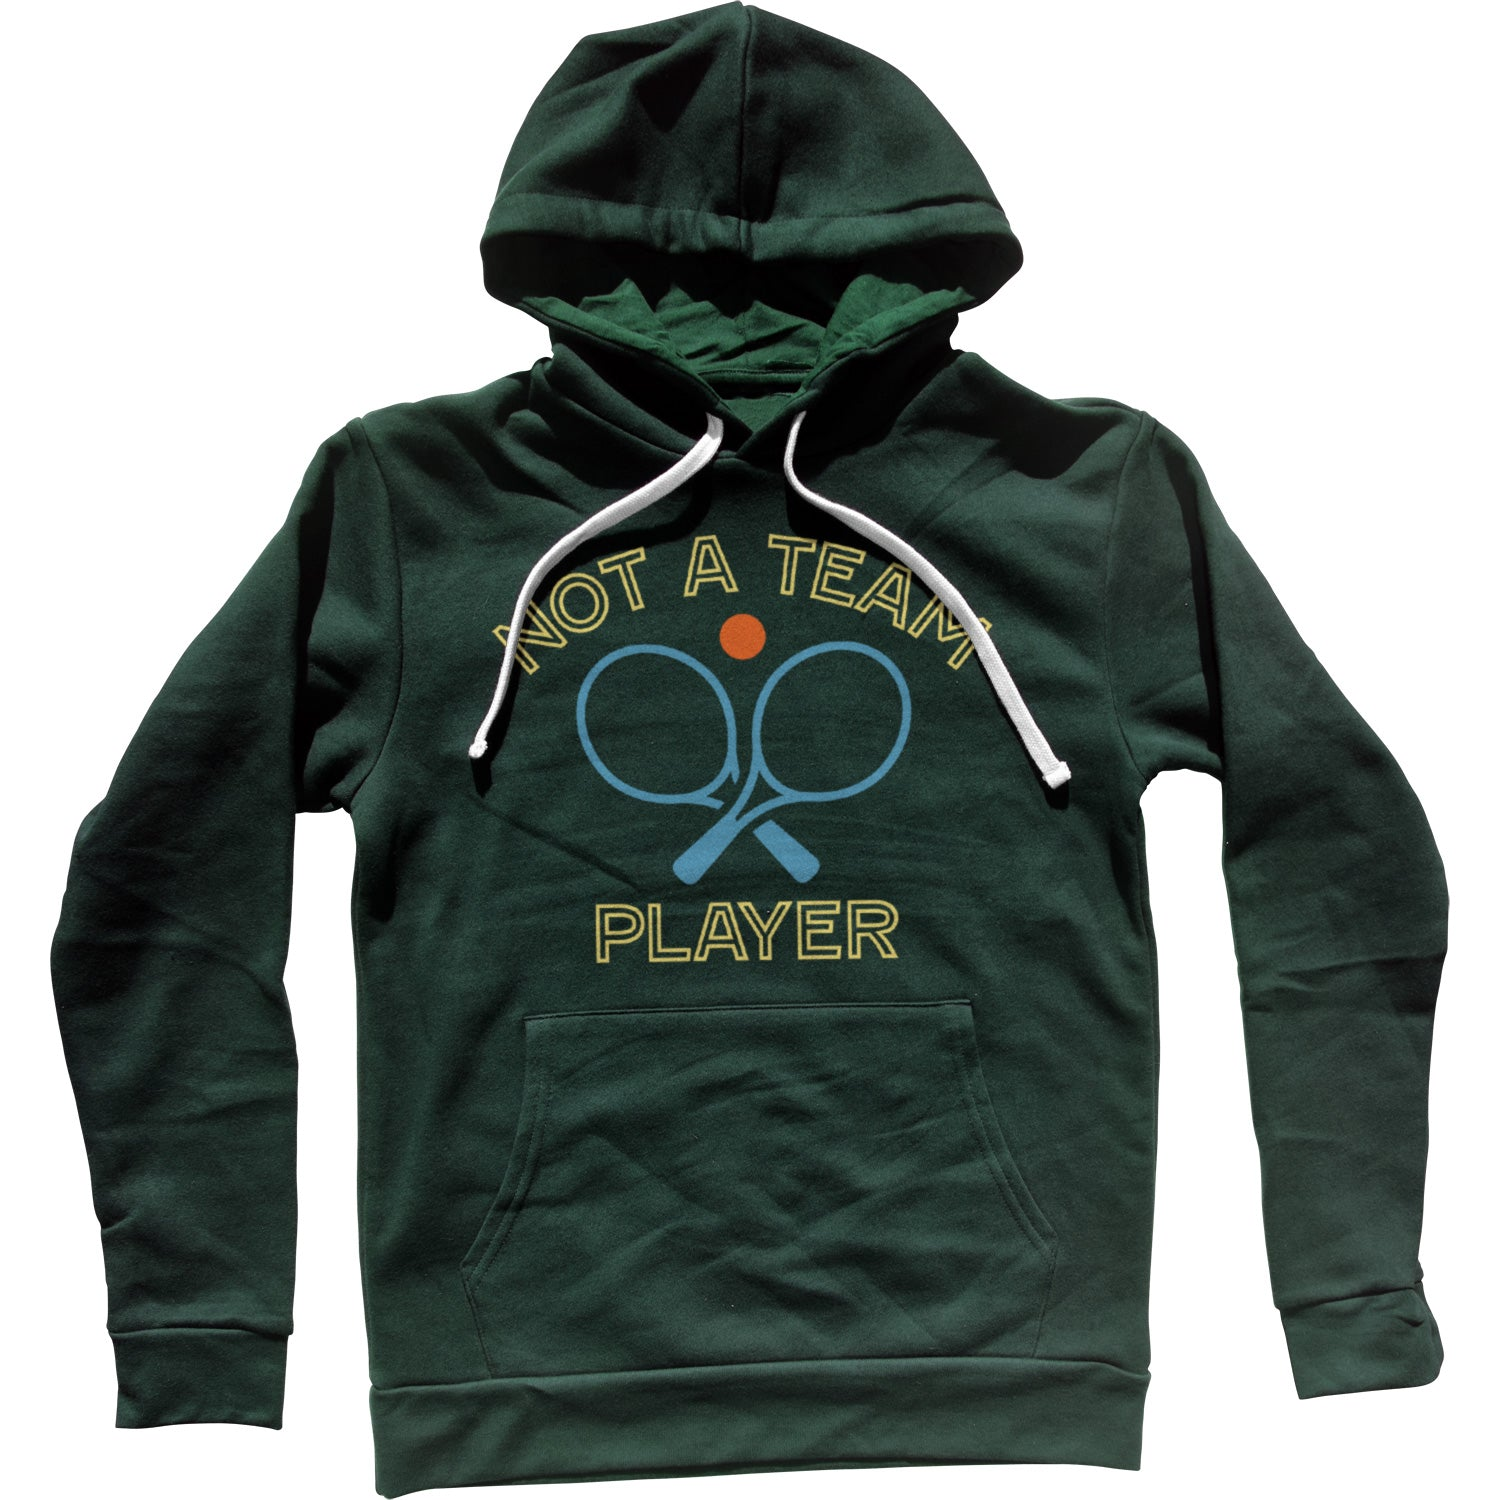 Not a Team Player Unisex Hoodie